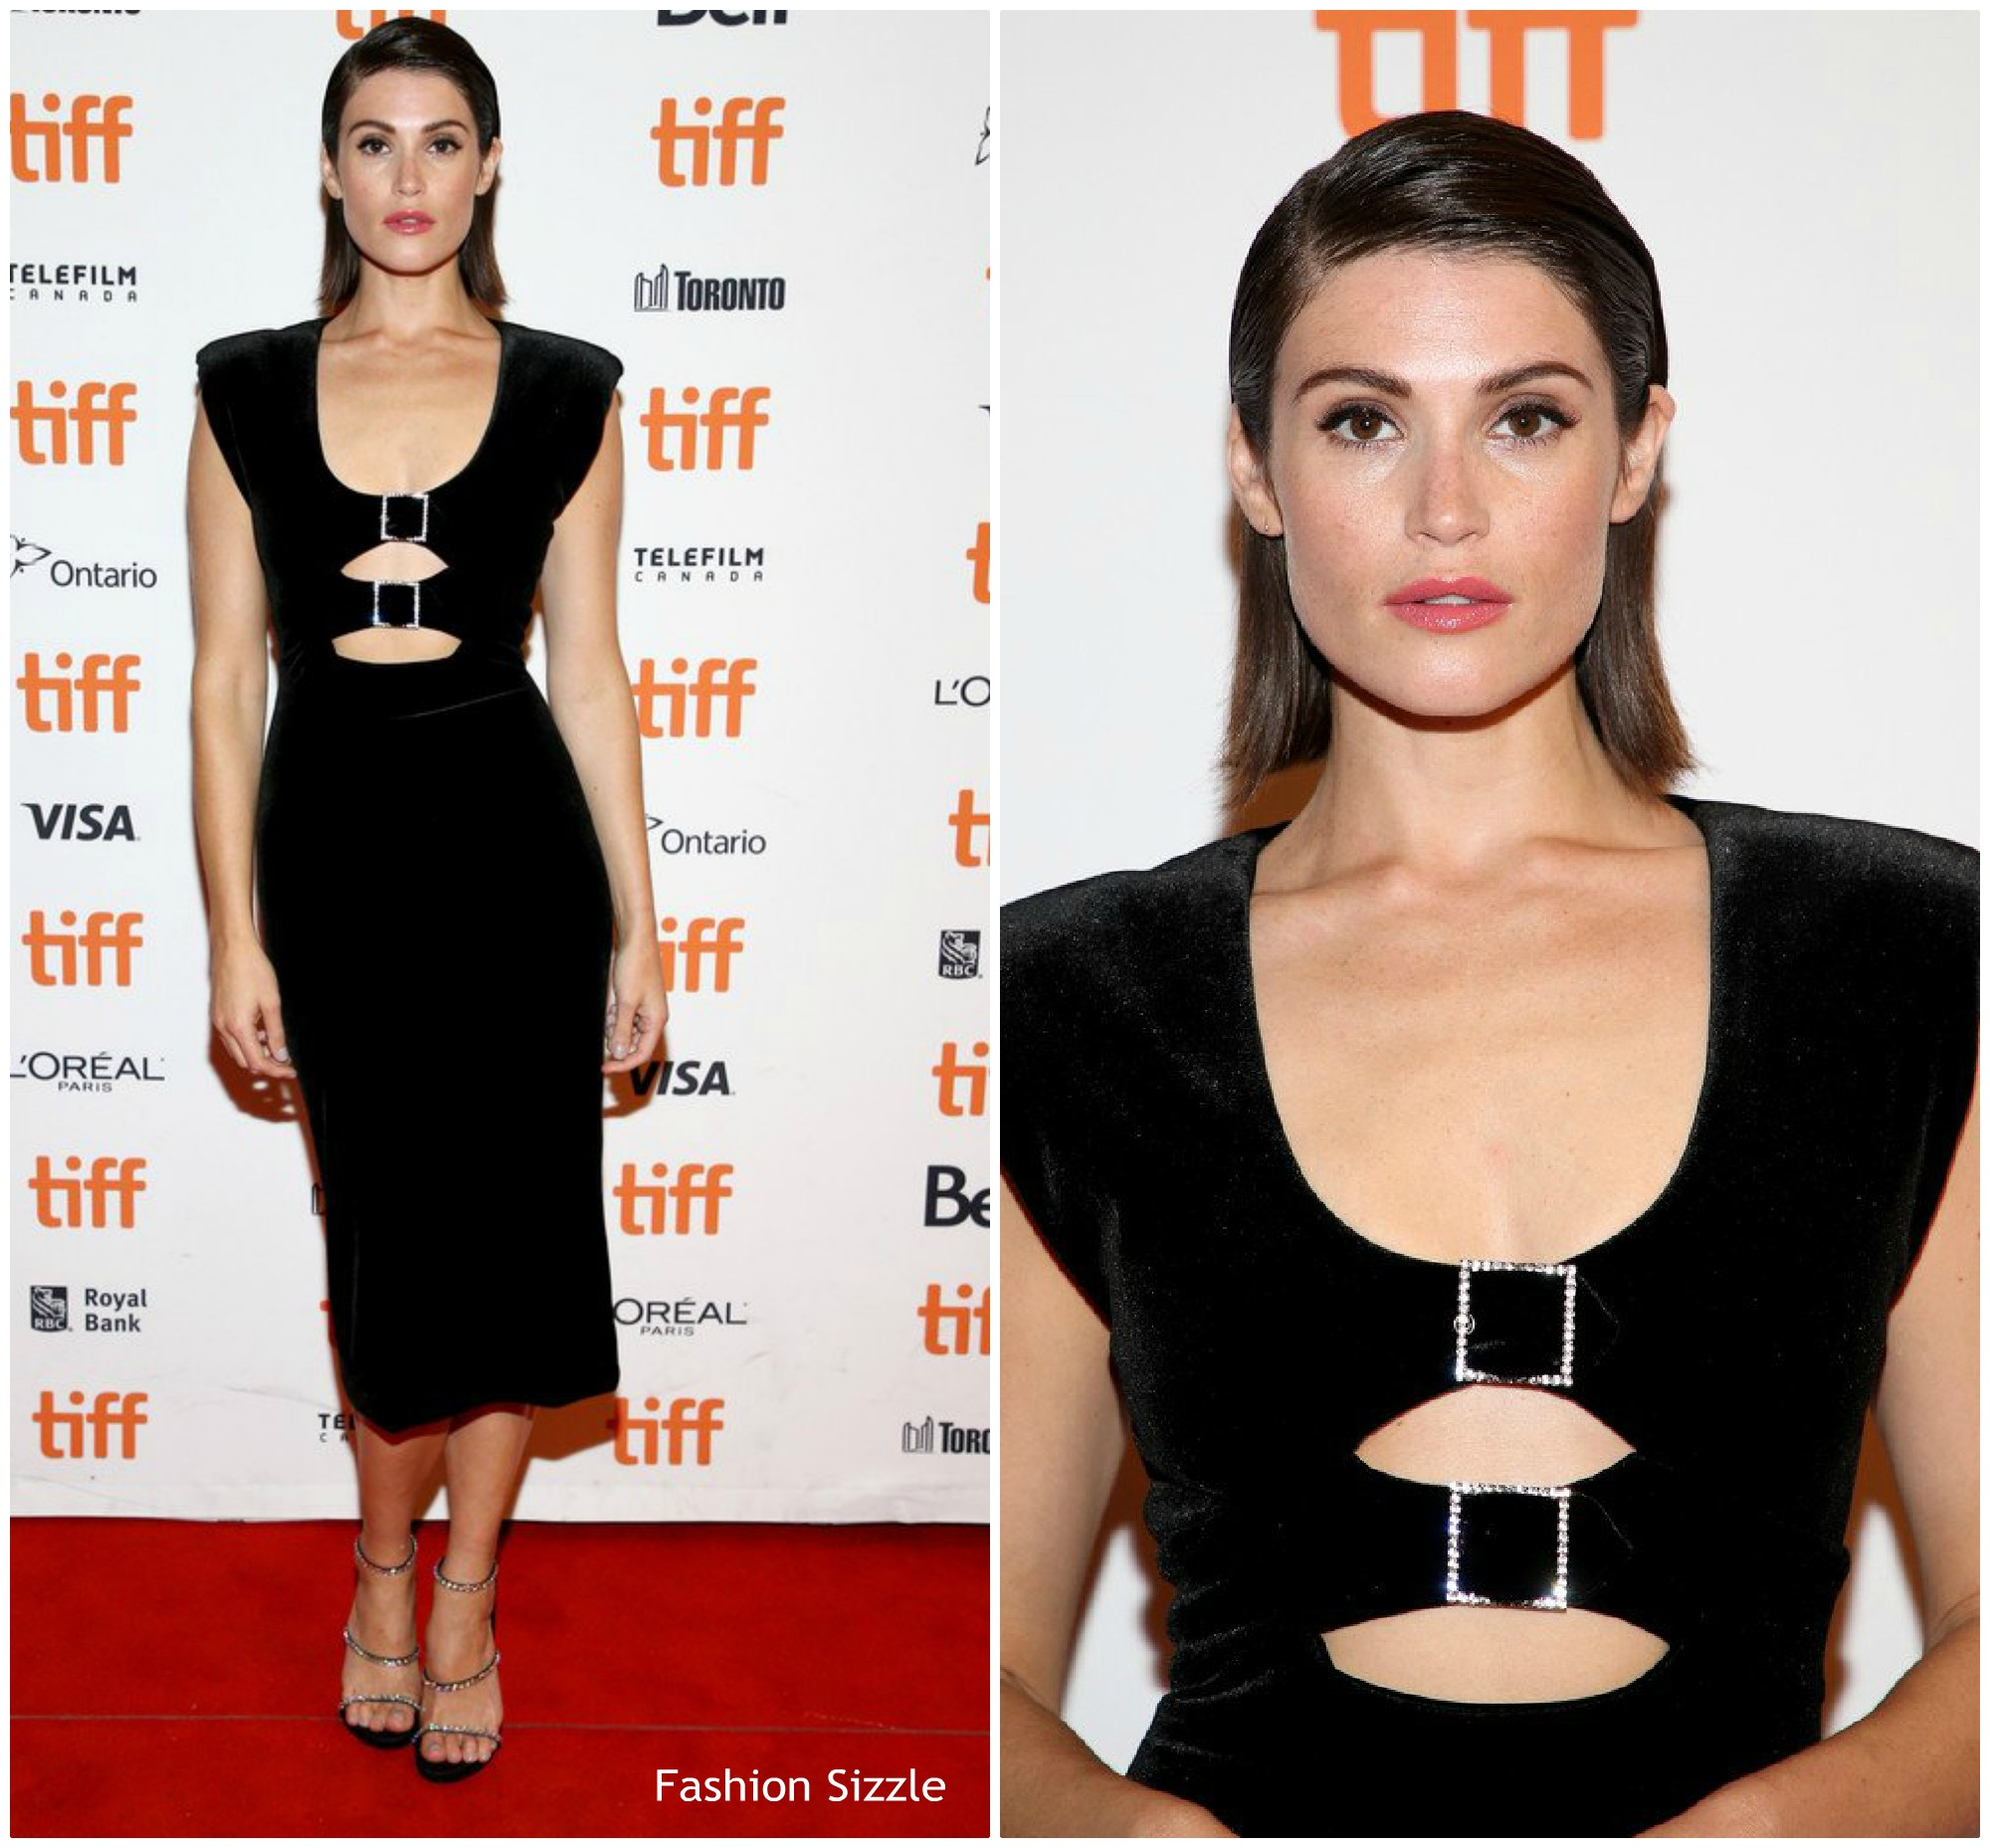 gemma-arterton-in-christopher-kane-vita-and-virginia-international-film-festival-premiere